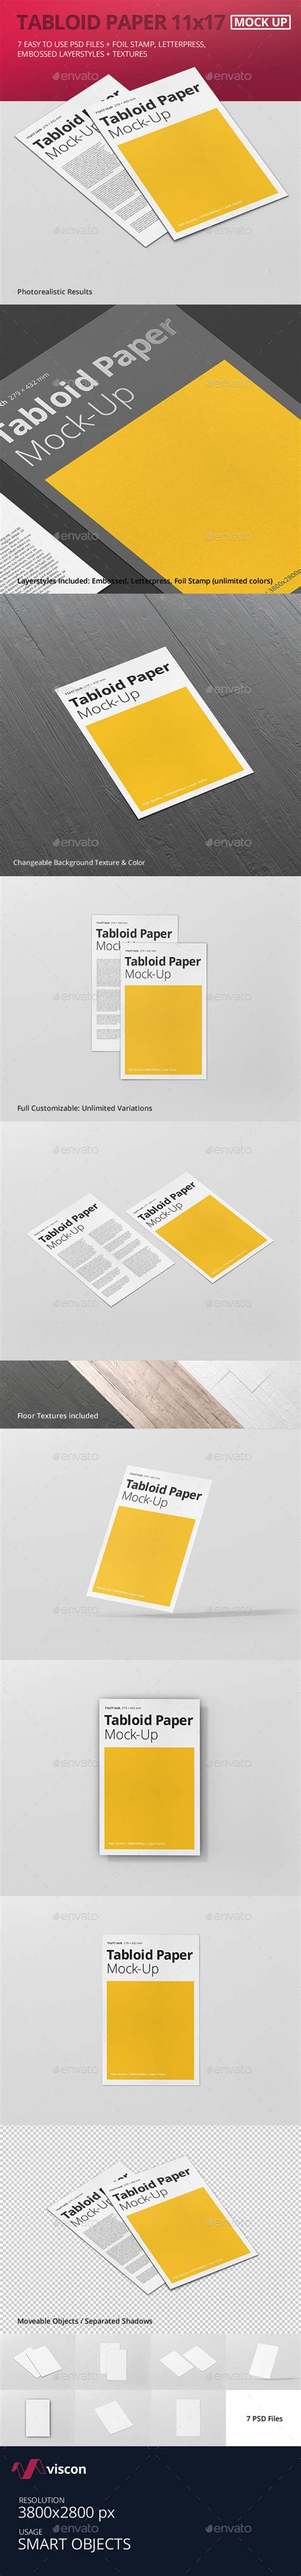 software layout tabloid tabloid paper mock up 11x17 by visconbiz graphicriver